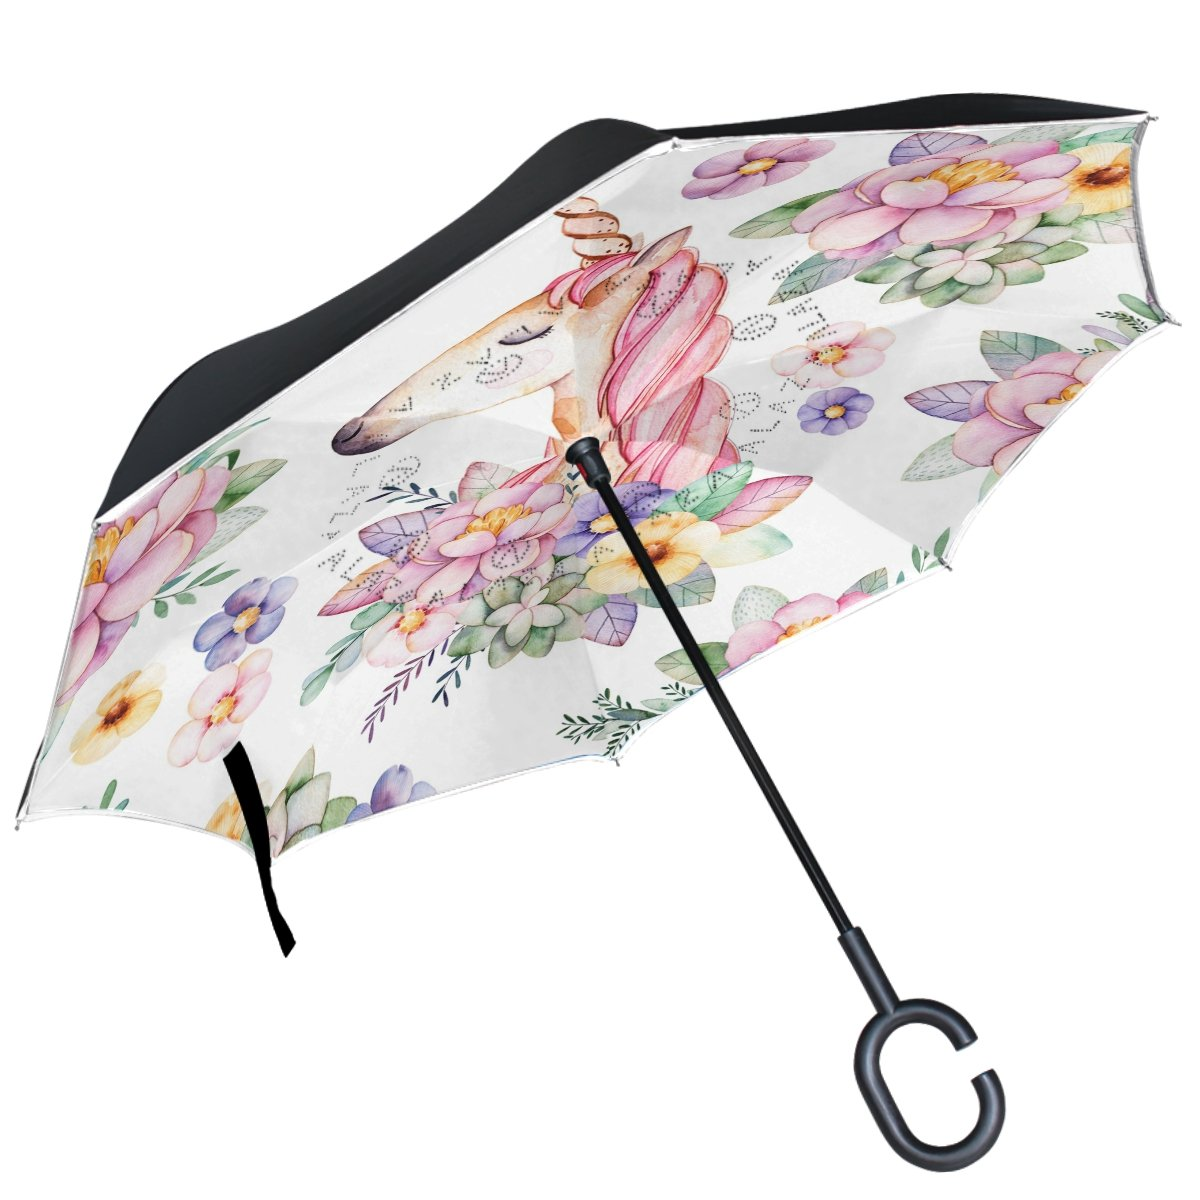 Custom Crosses Compact Travel Windproof Rainproof Foldable Umbrella